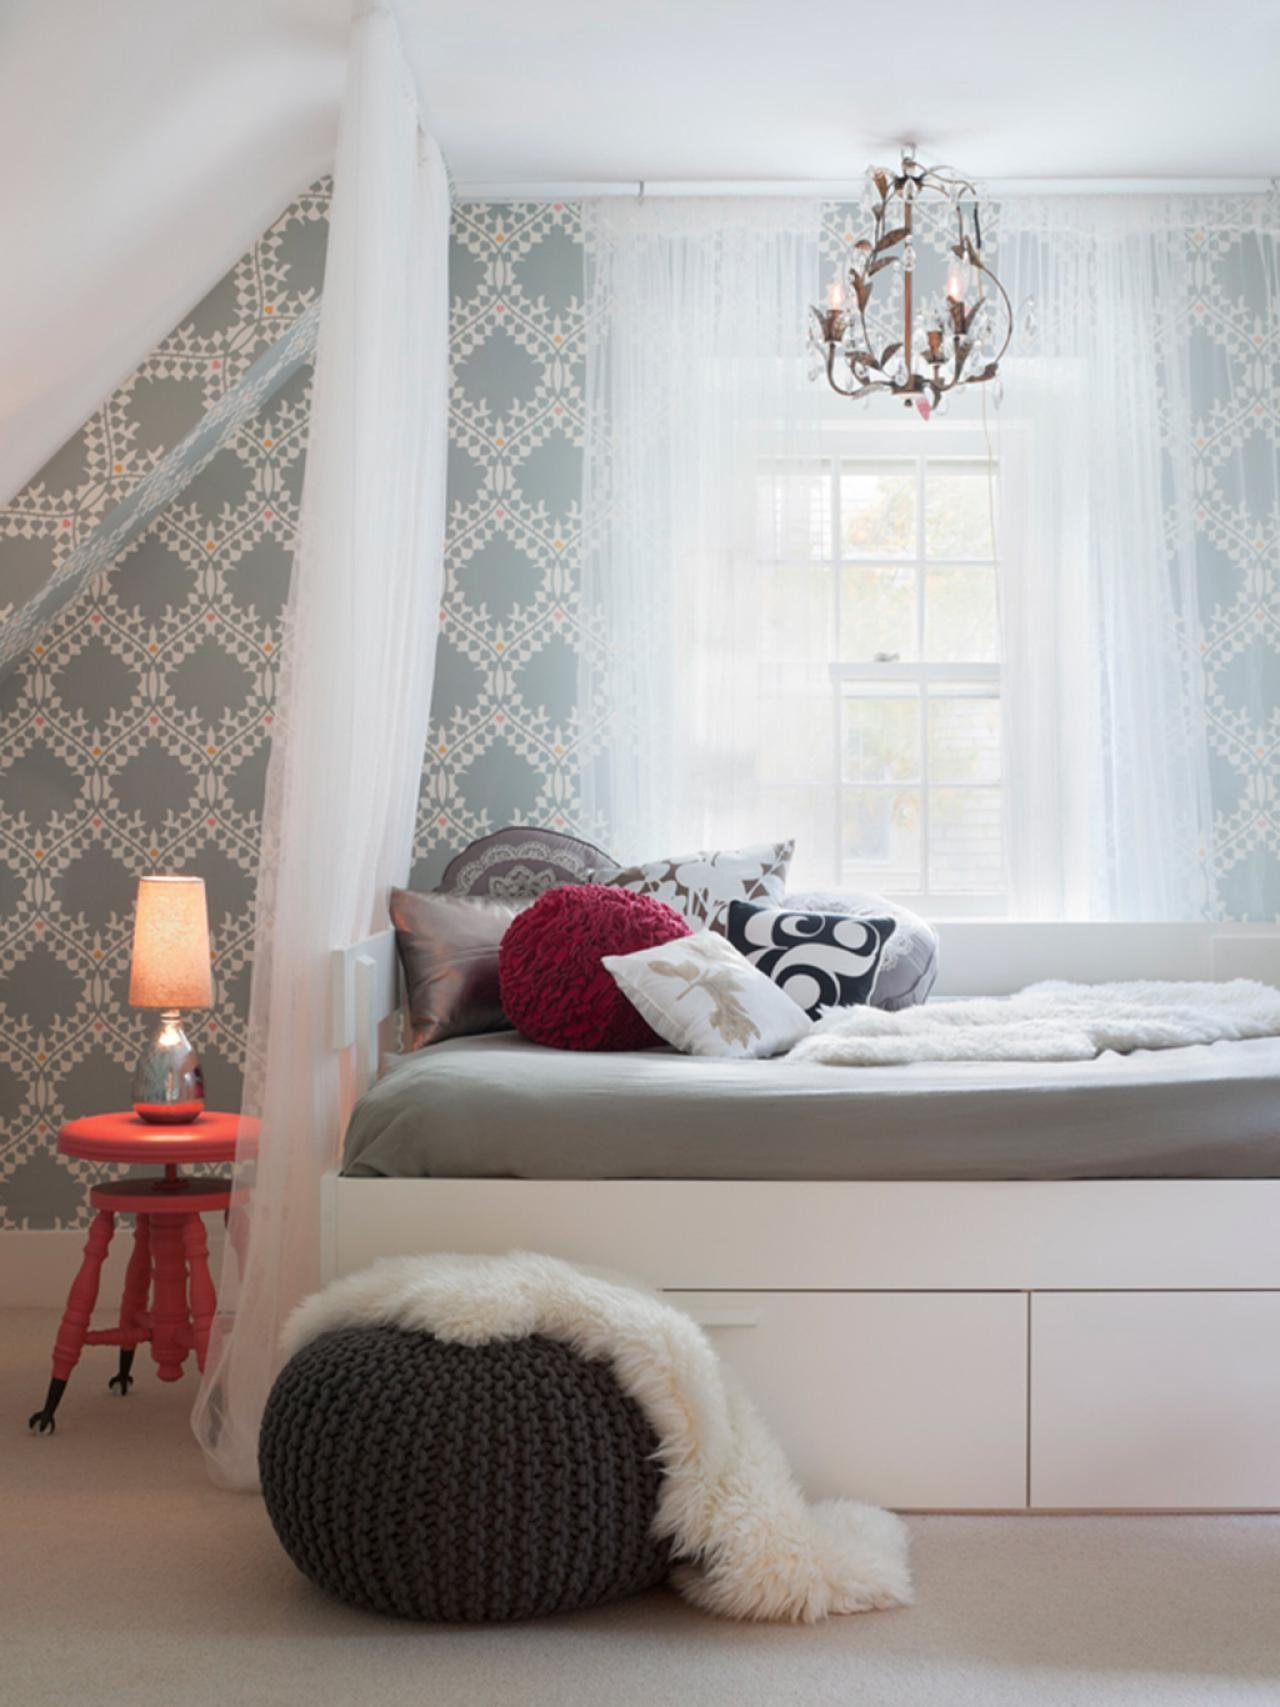 Best Sophisticated T**N Bedroom Decorating Ideas Hgtv S Decorating Design Blog Hgtv With Pictures